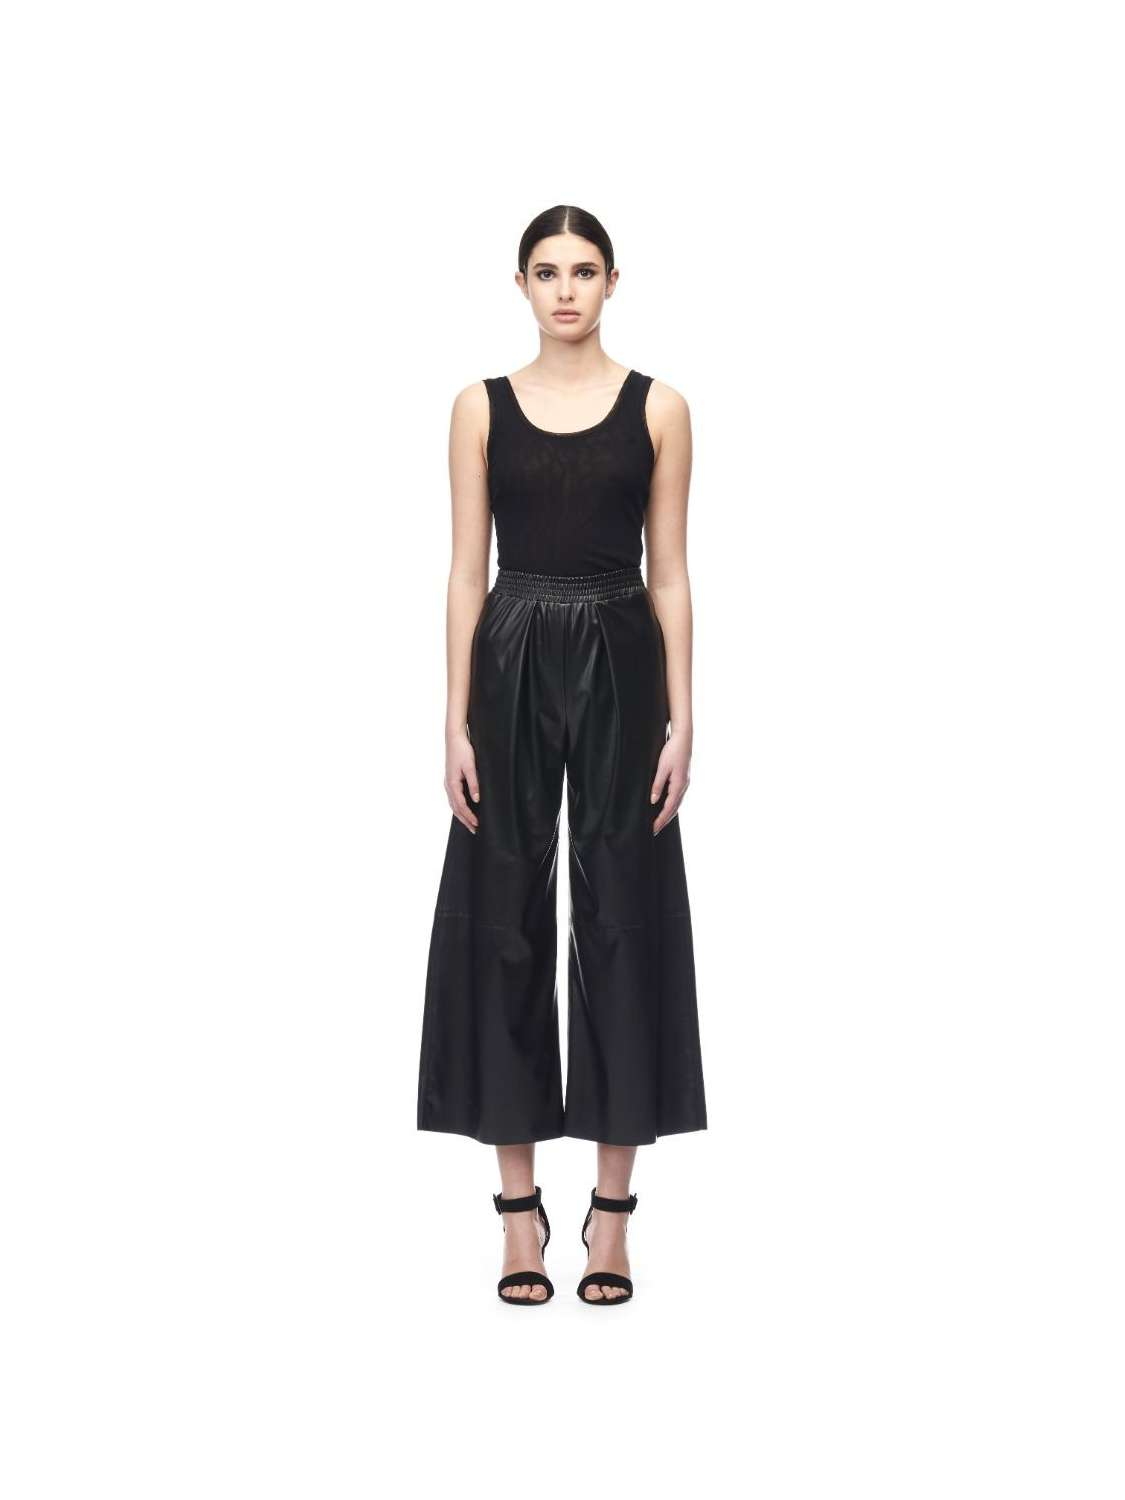 Eco leather culottes pants